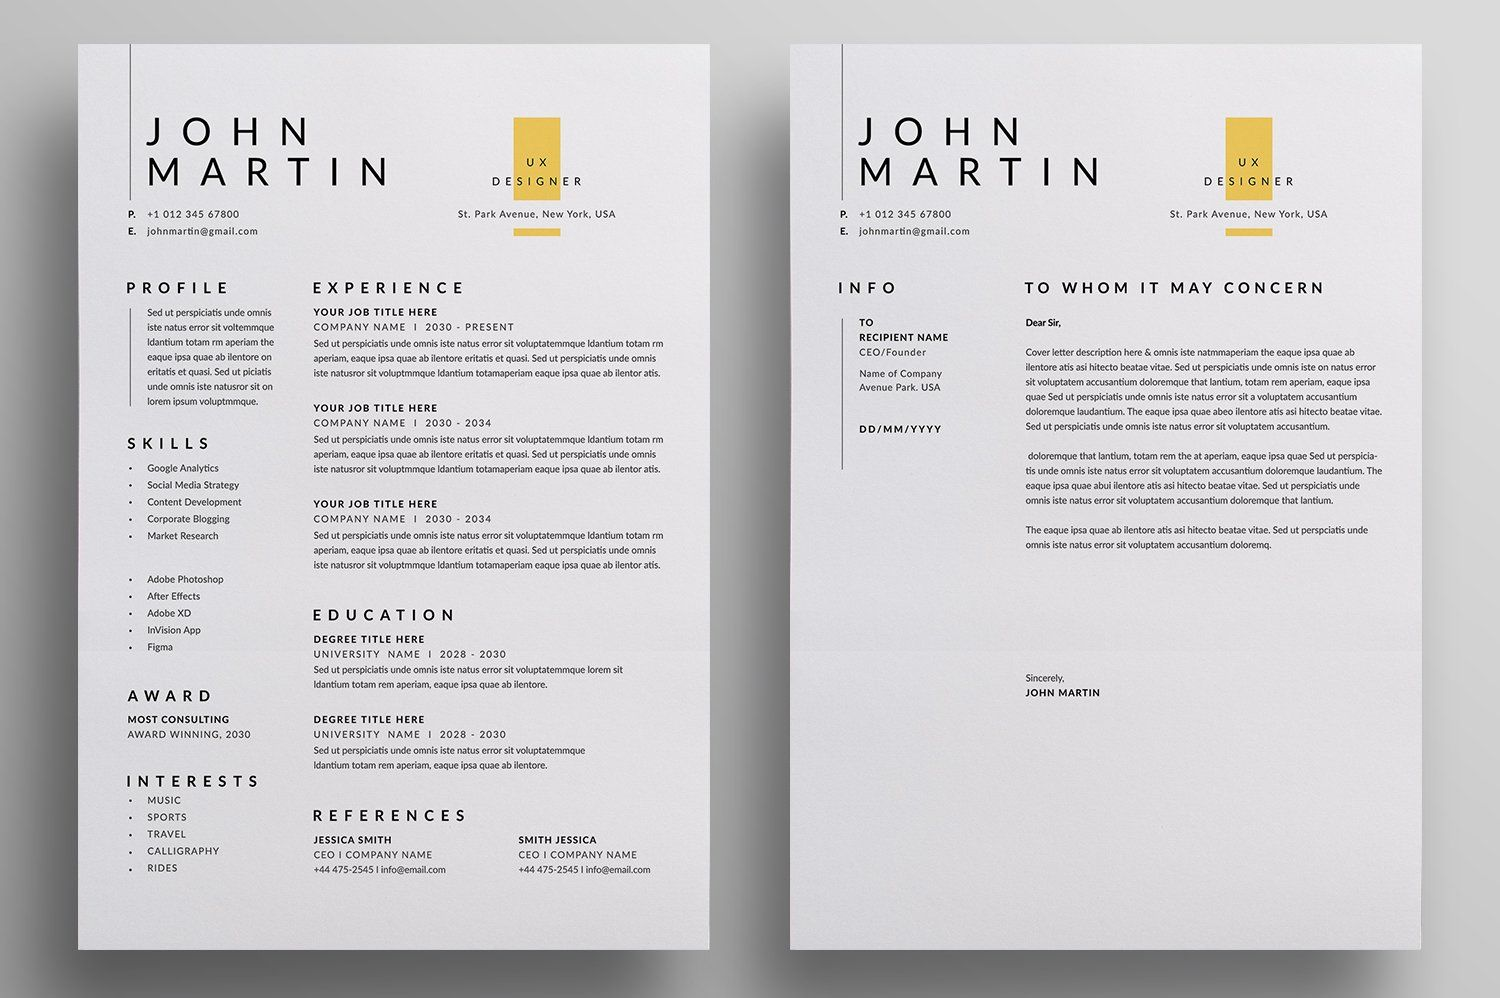 Resume Cv By Reuix Studio On Creativemarket In 2020 Resume Design Template Resume Cv Letterhead Design